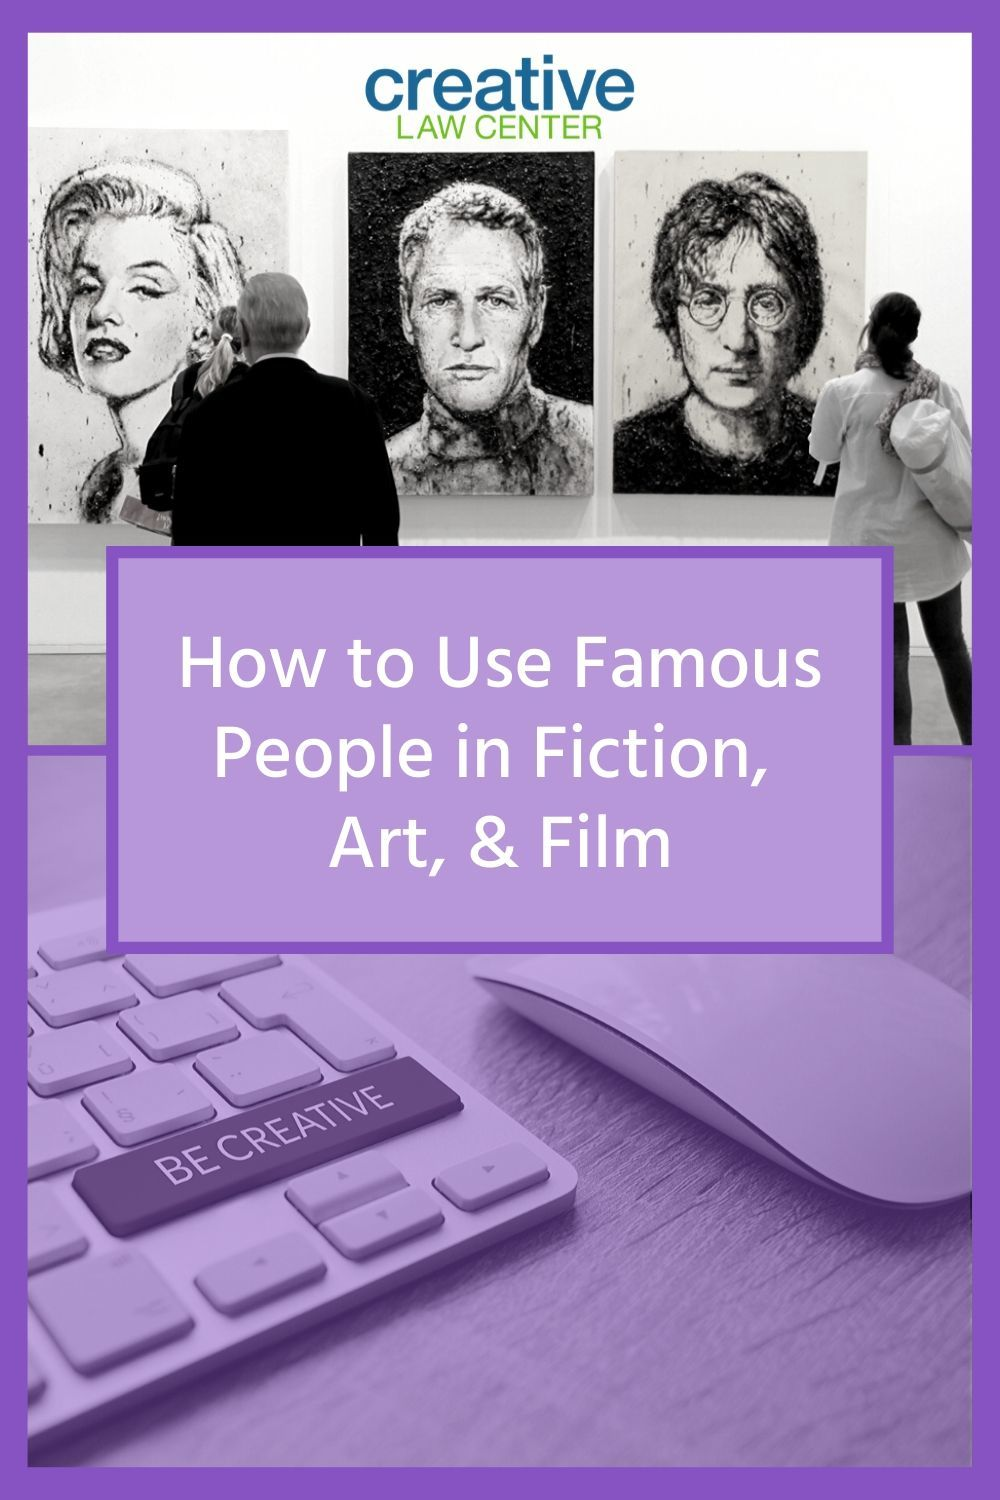 How to Use Famous People in Fiction, Art, & Film